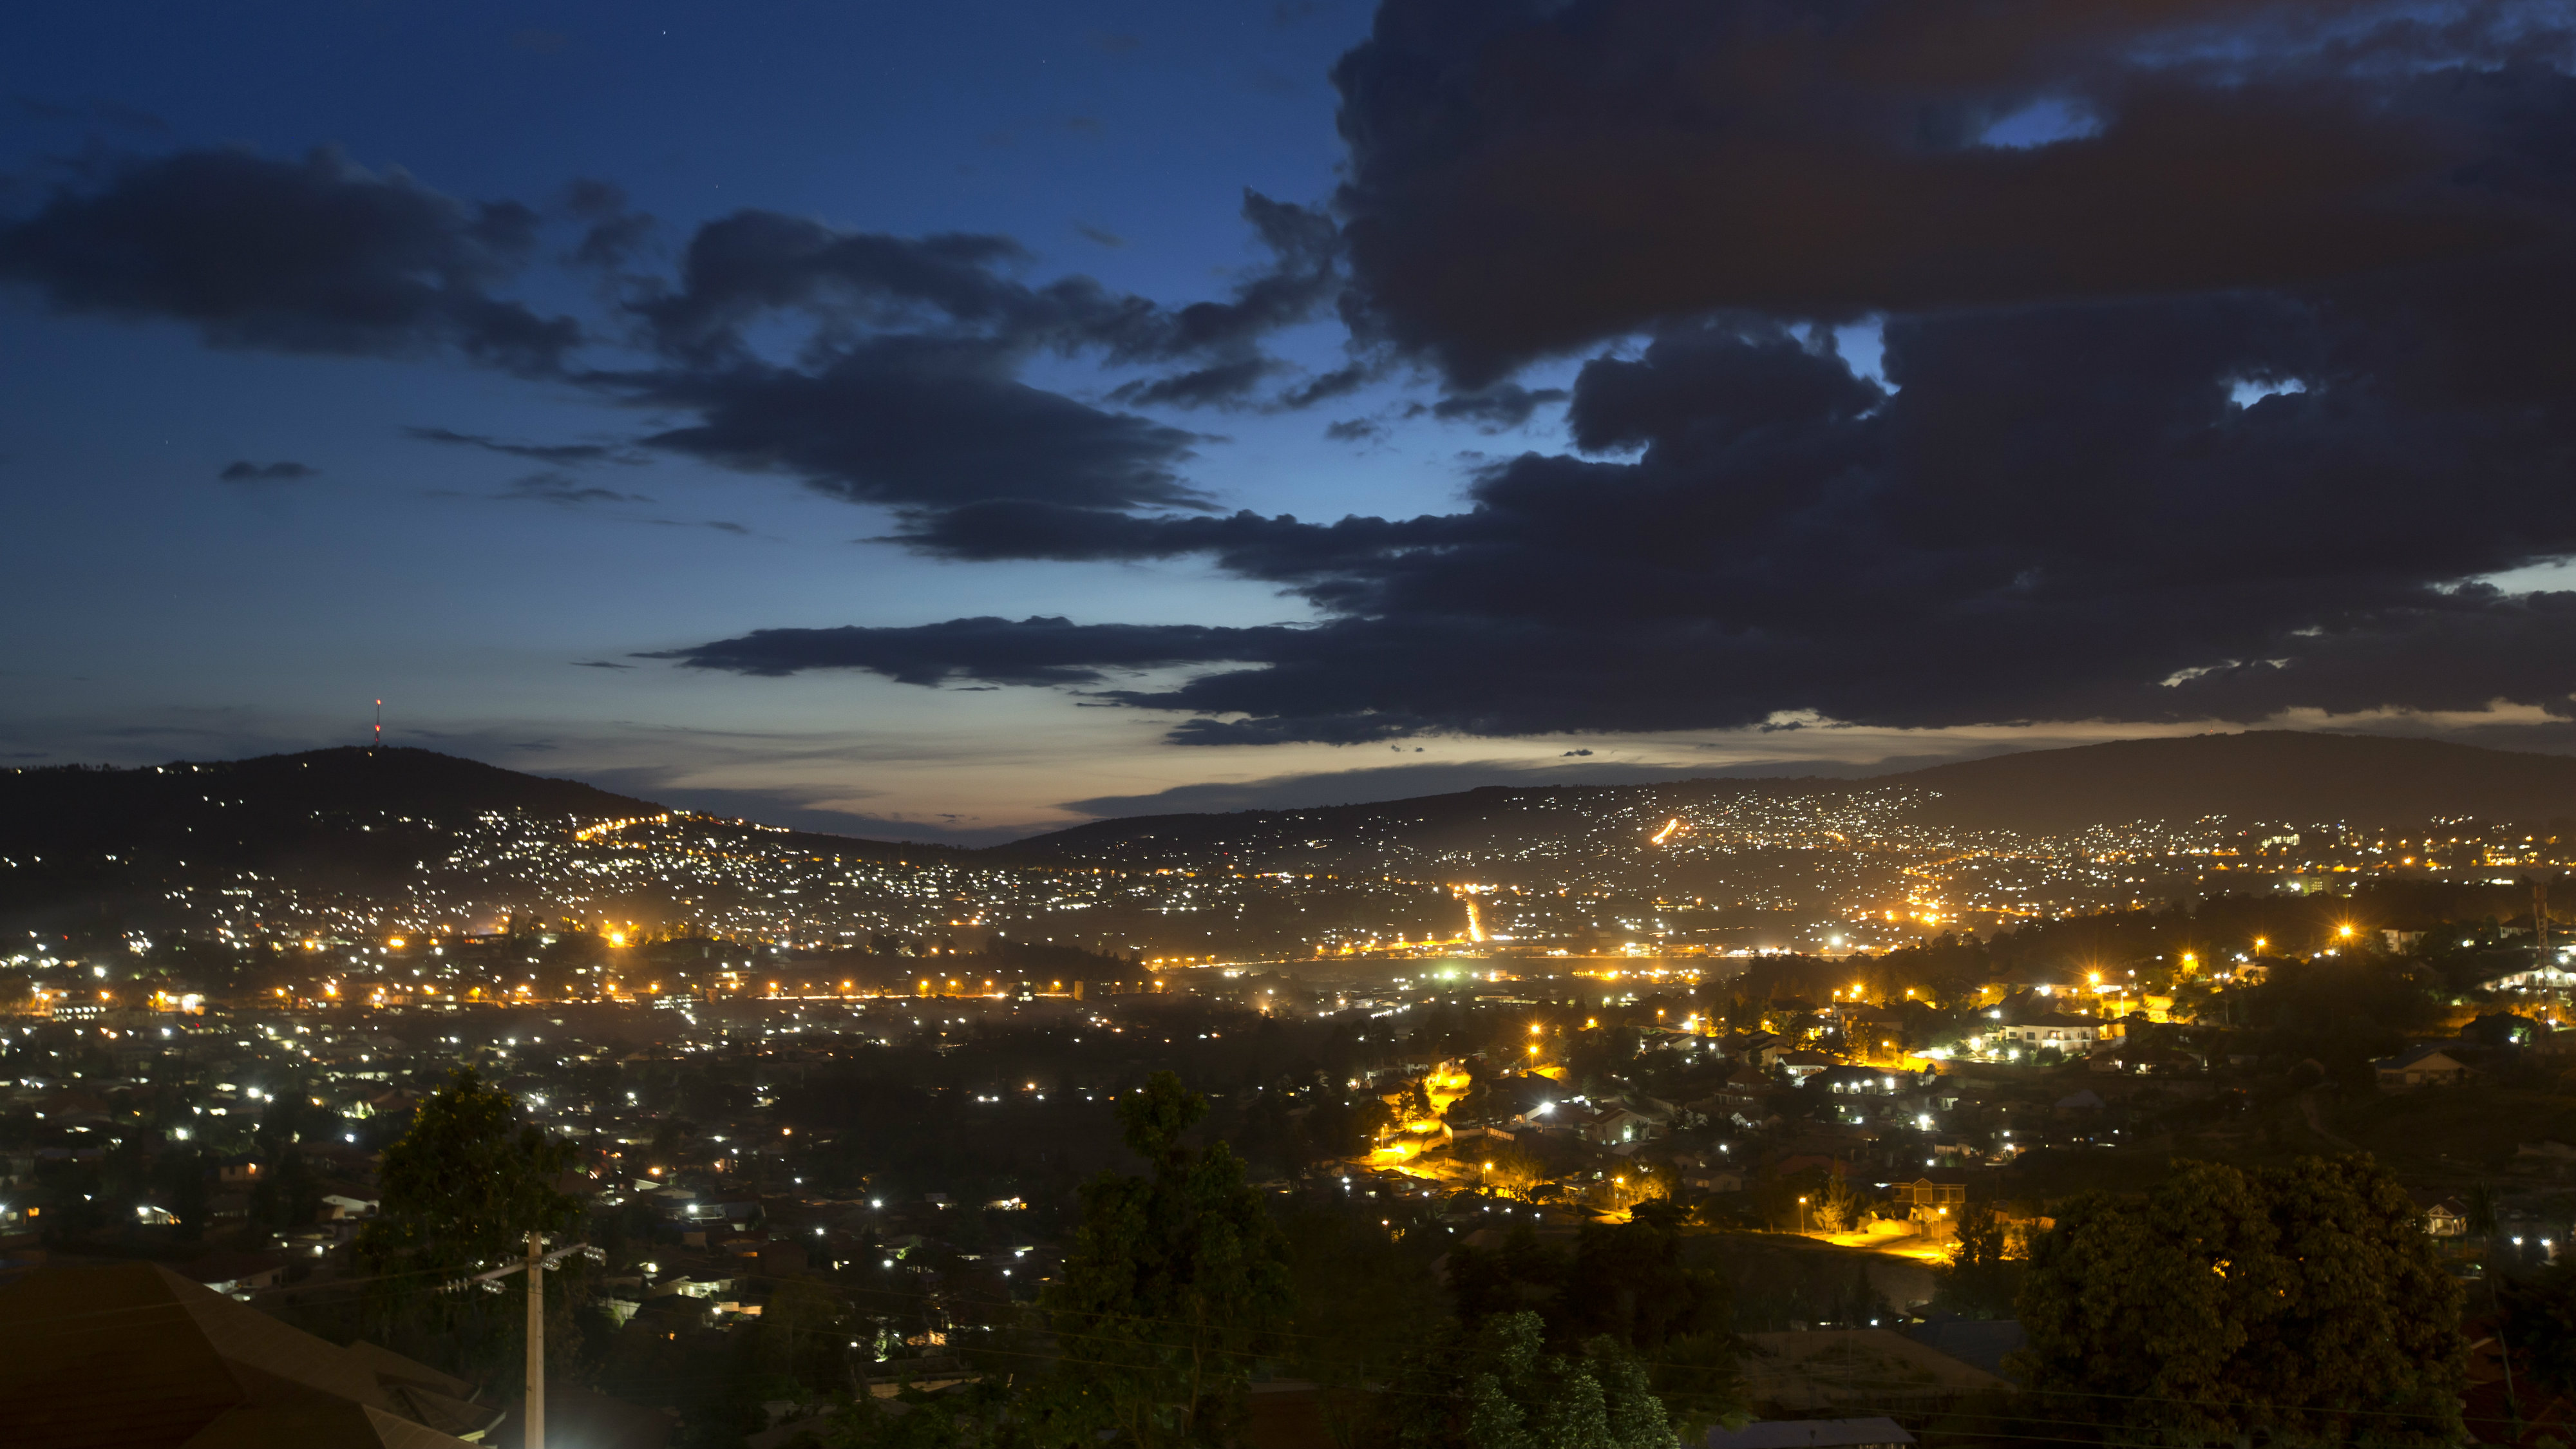 A view over the city at night in the capital Kigali, Rwanda Thursday, April 3, 2014. (AP Photo/Ben Curtis)